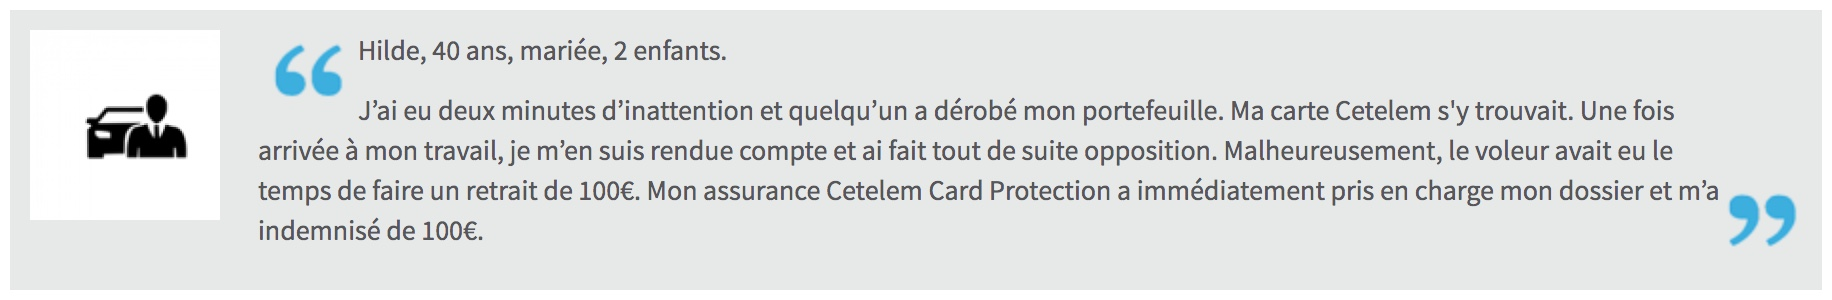 cetelem card protection